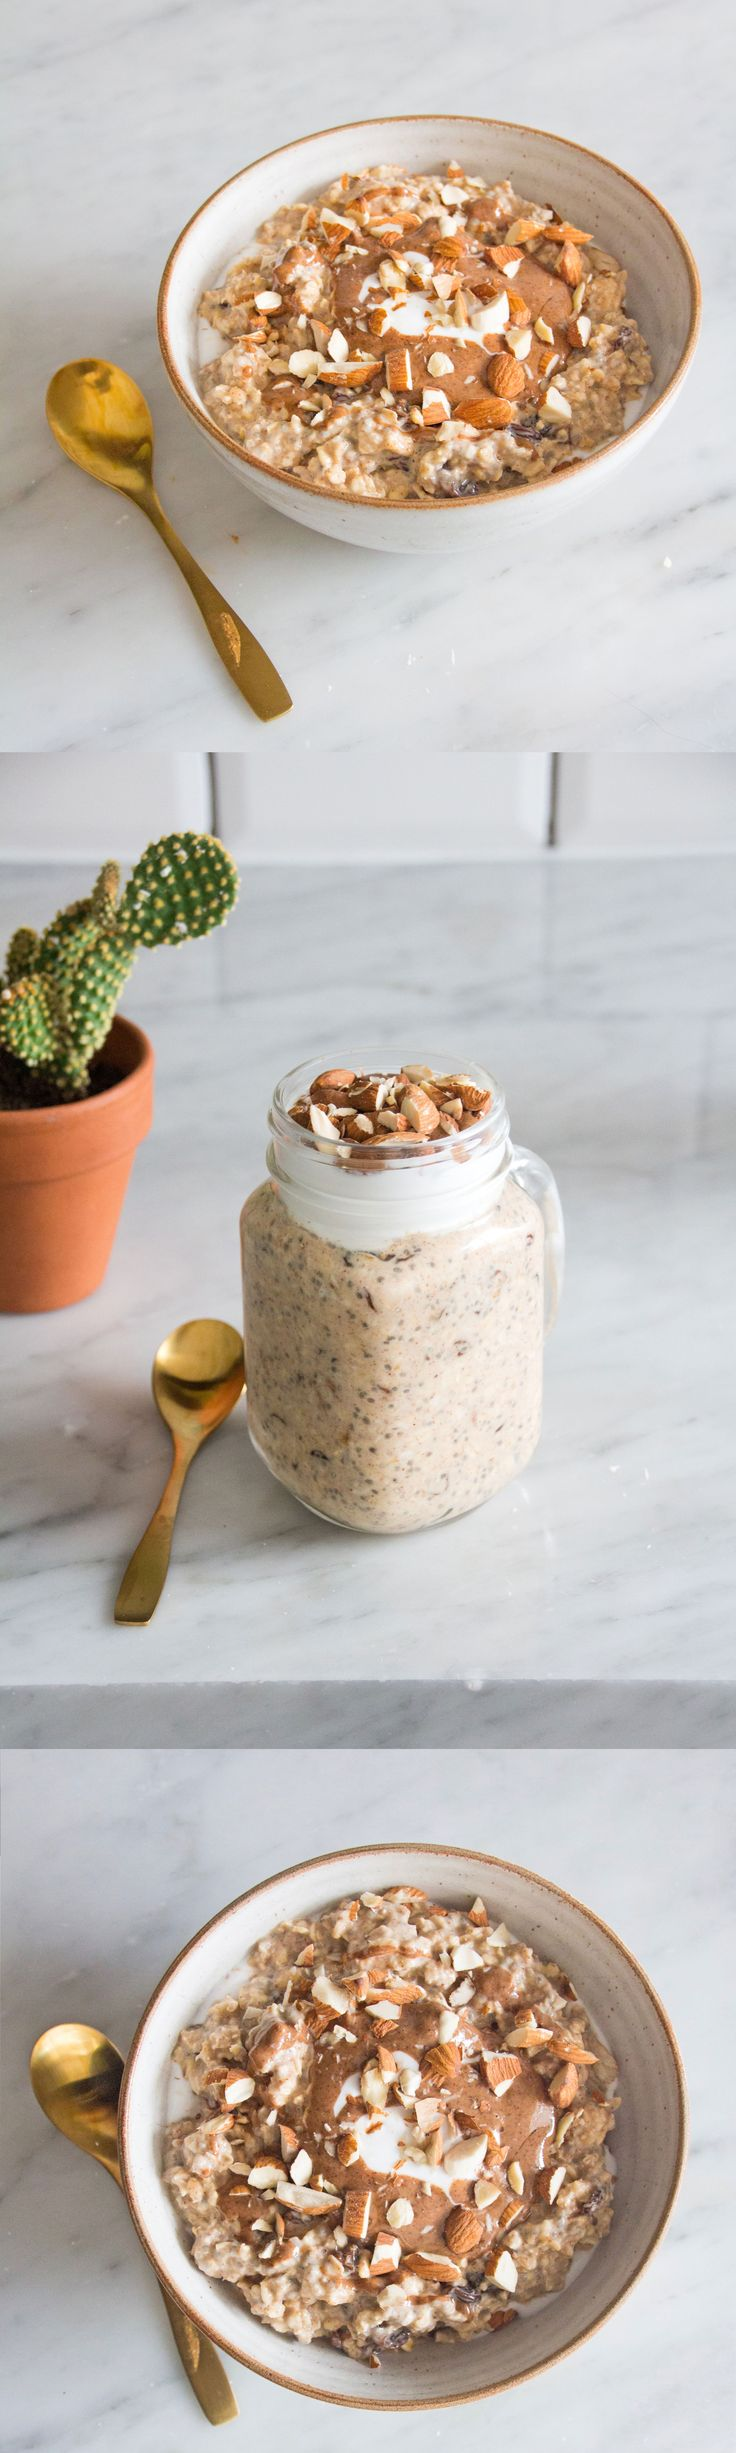 PEANUT BUTTER OVERNIGHT OATS... This easy recipe is all plant based, vegan friendly, gluten free and so delicious! It's my new favourite breakfast for busy weeks. With just six ingredients and no prep time, it's a real winner. I stir it together before I go to bed and then grab the pot and take it on the go with me. The mix of creamy peanut butter with sweet oats, juicy raisins, almond milk and a splash of maple is so delicious, while the chia seeds help thicken it up.